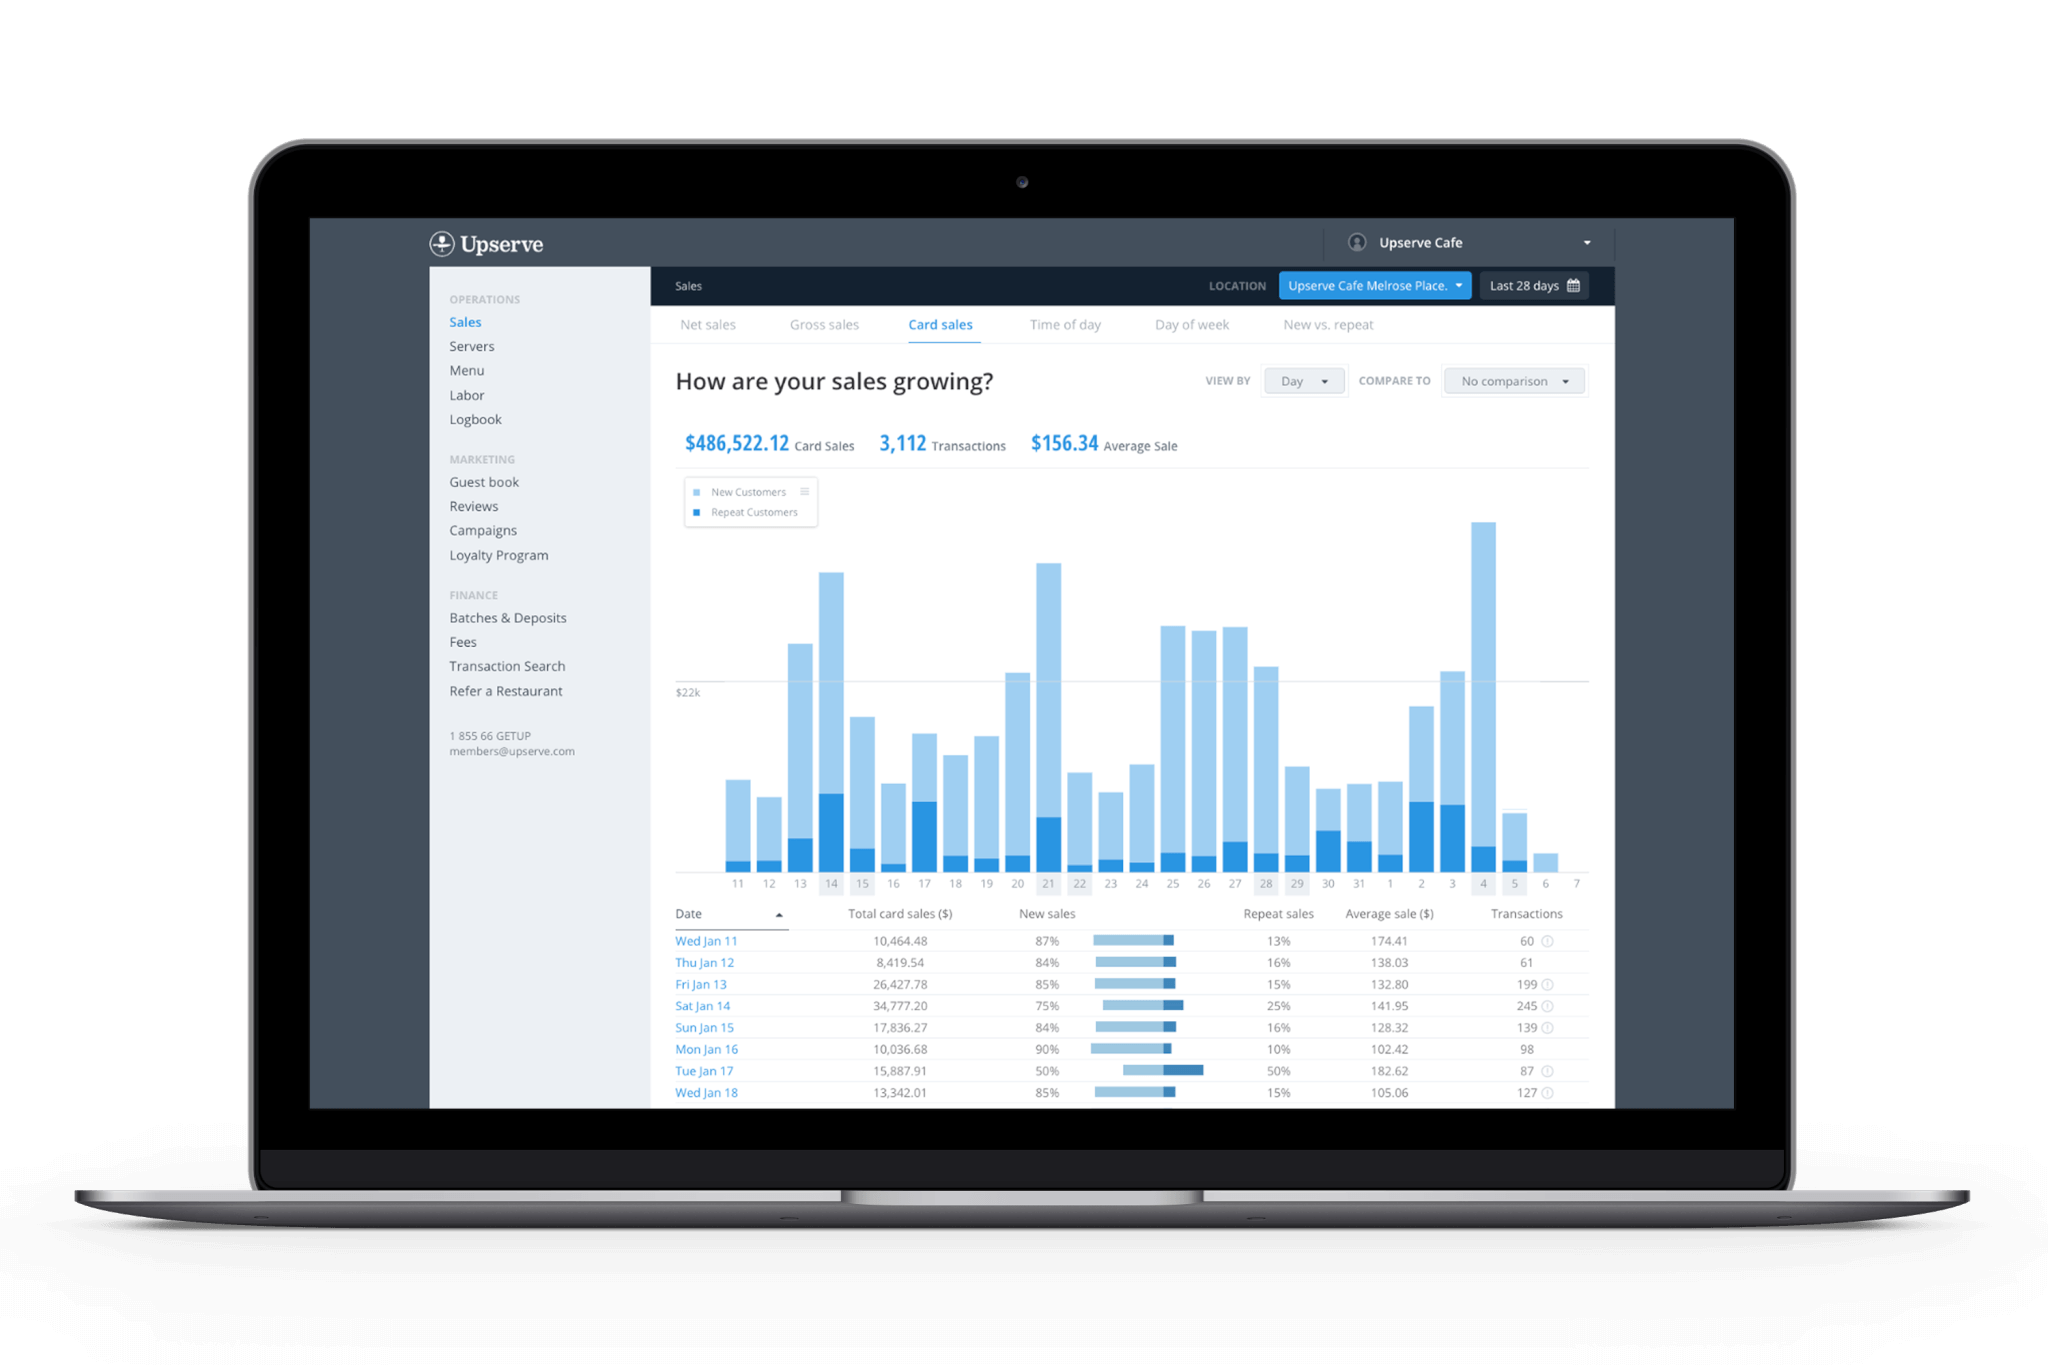 Watch your sales grow with Upserve's Sales Reports